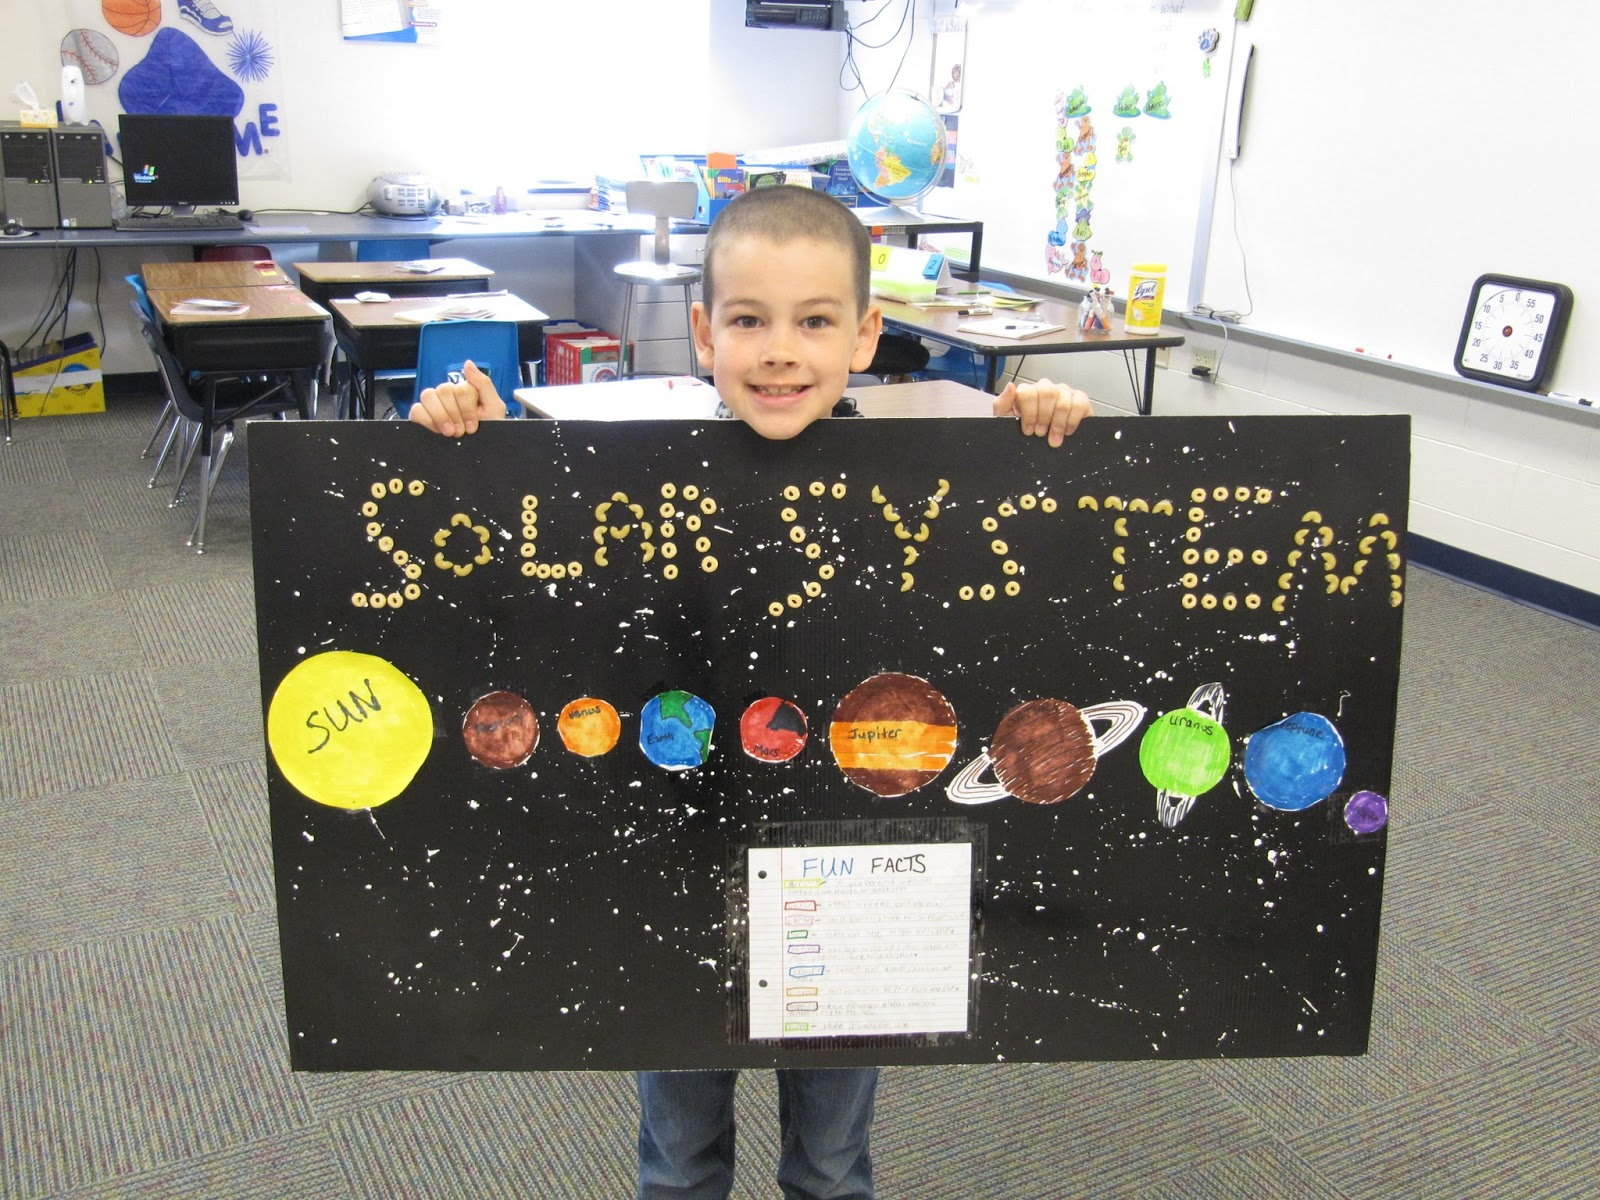 solar system projects for 3rd grade - photo #43